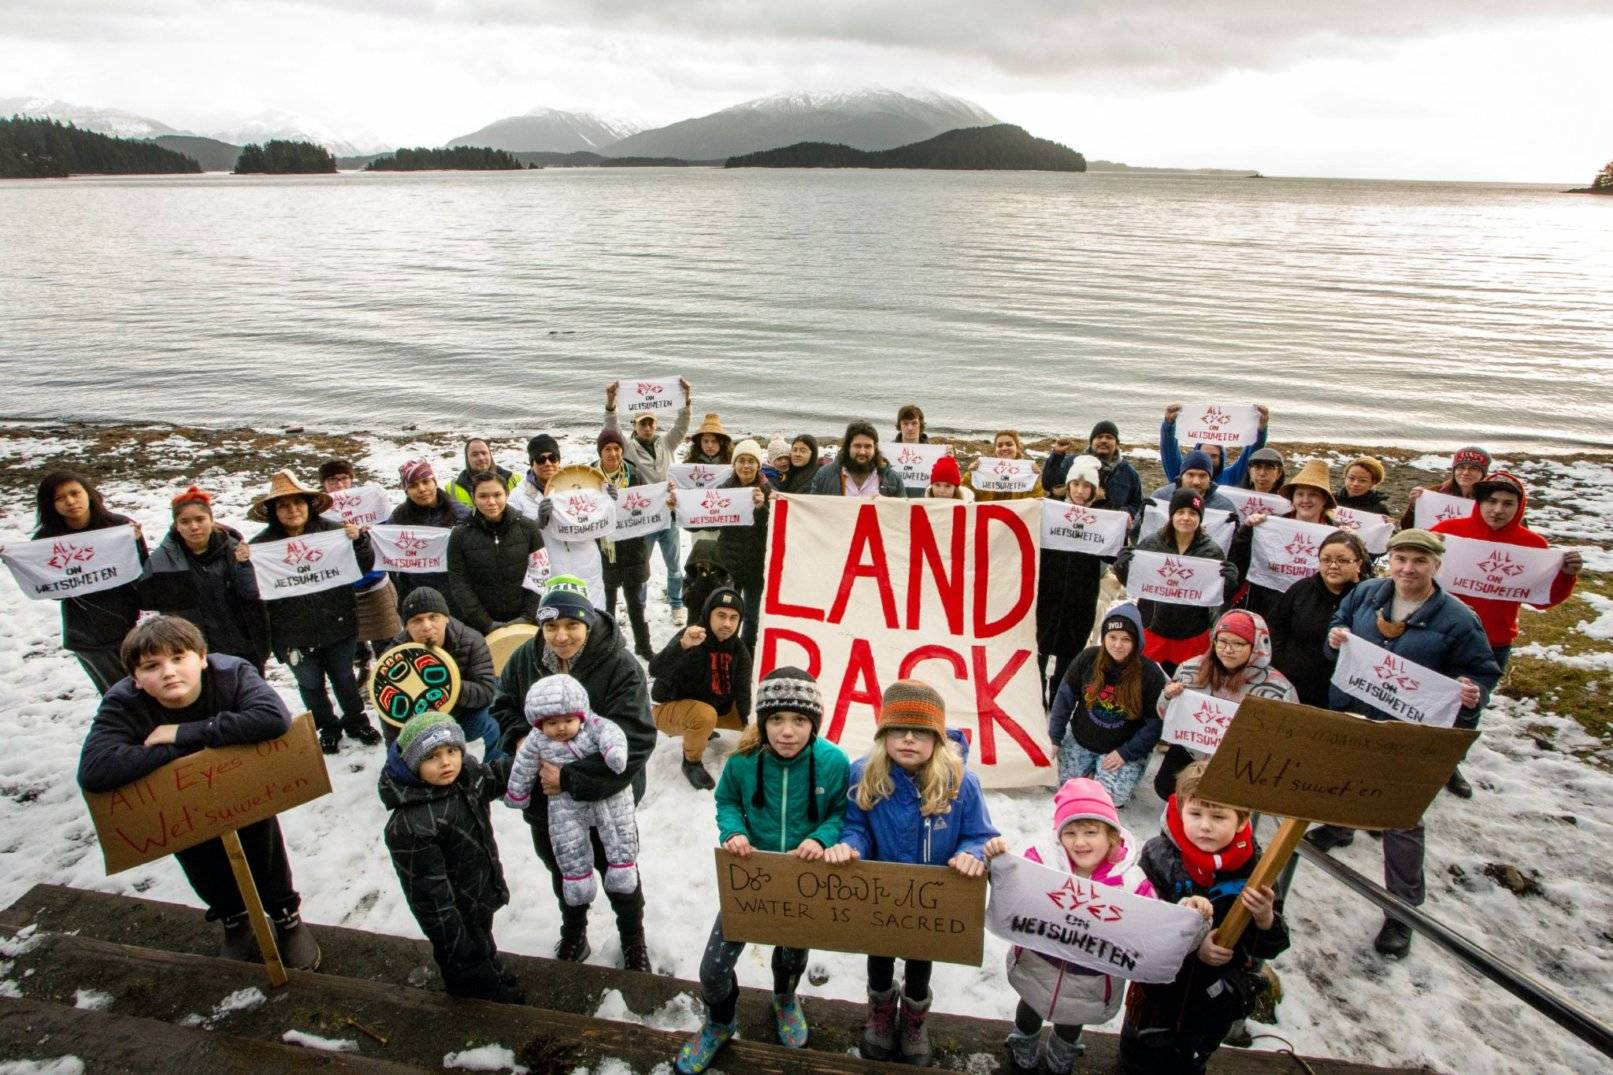 An event held in solidarity with Wet'suwet'en pipeline protests being held in British Columbia drew dozens of Juneauites to Auke Bay Recreation Area Sunday. (Courtesy Photo | Sigoop Price)